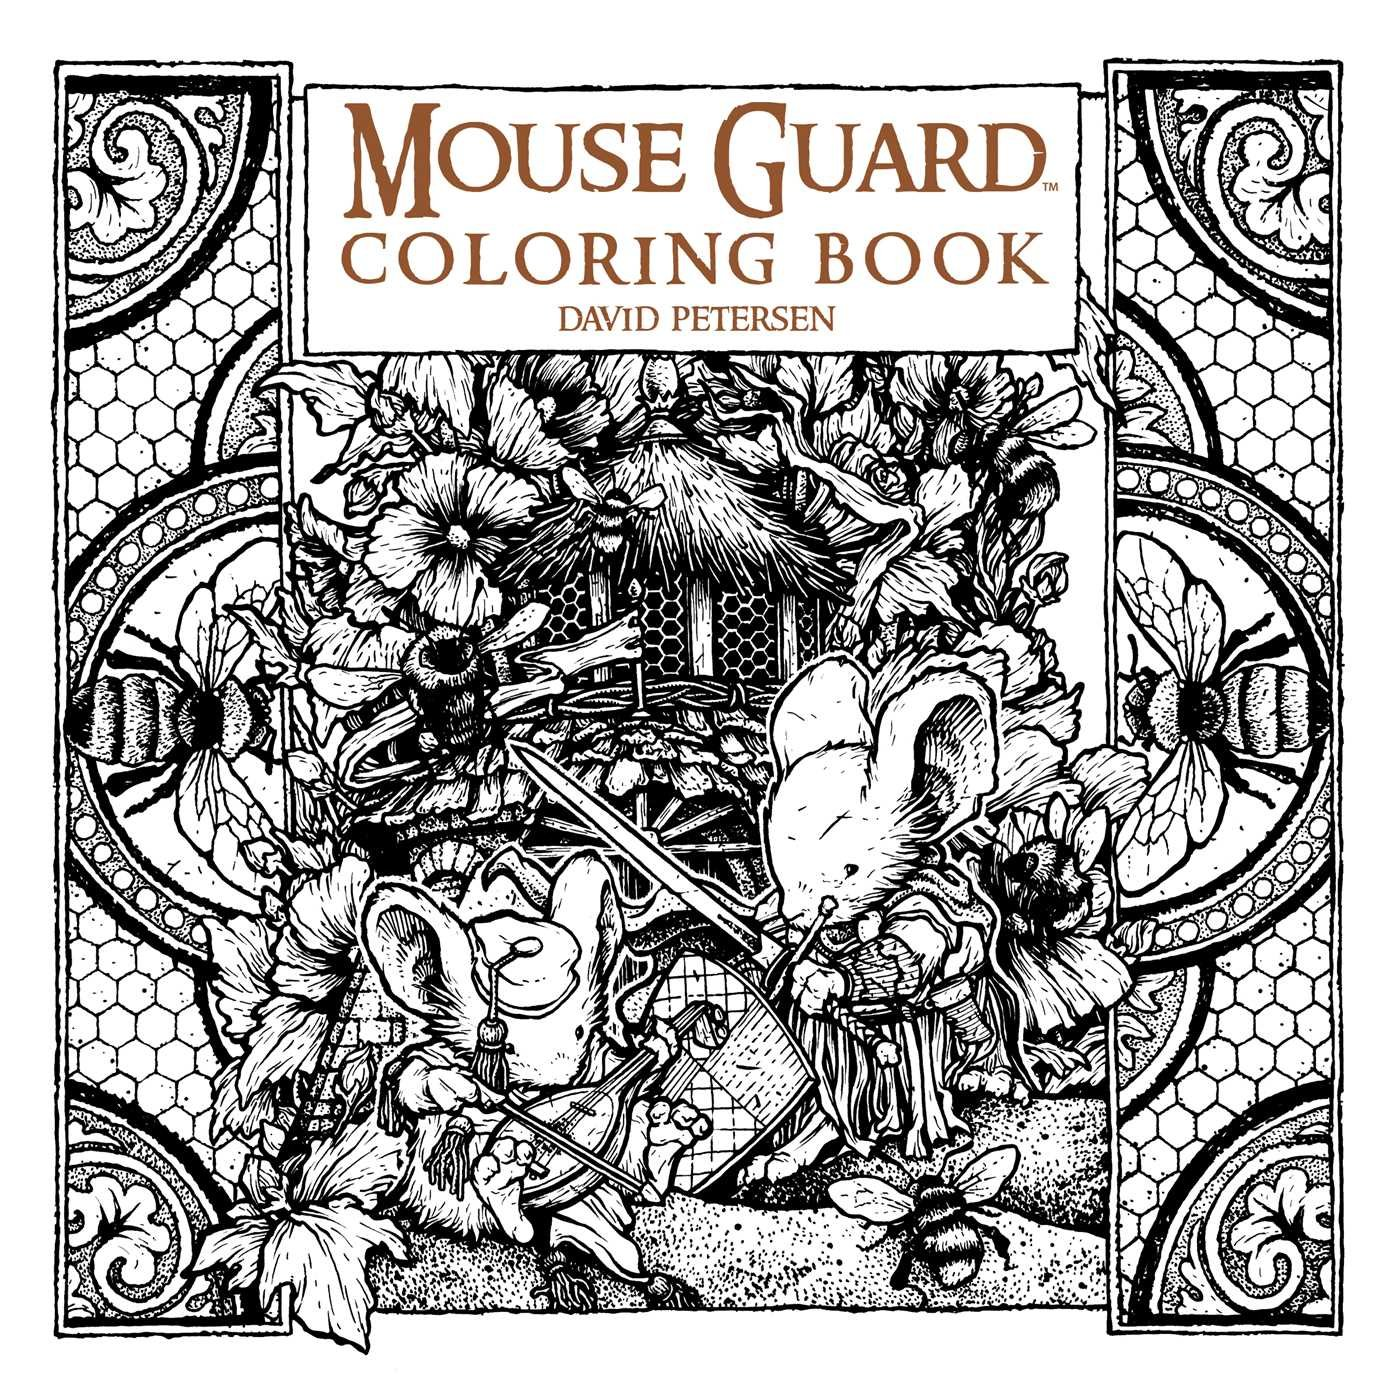 amazon com mouse guard coloring book 9781608869299 david